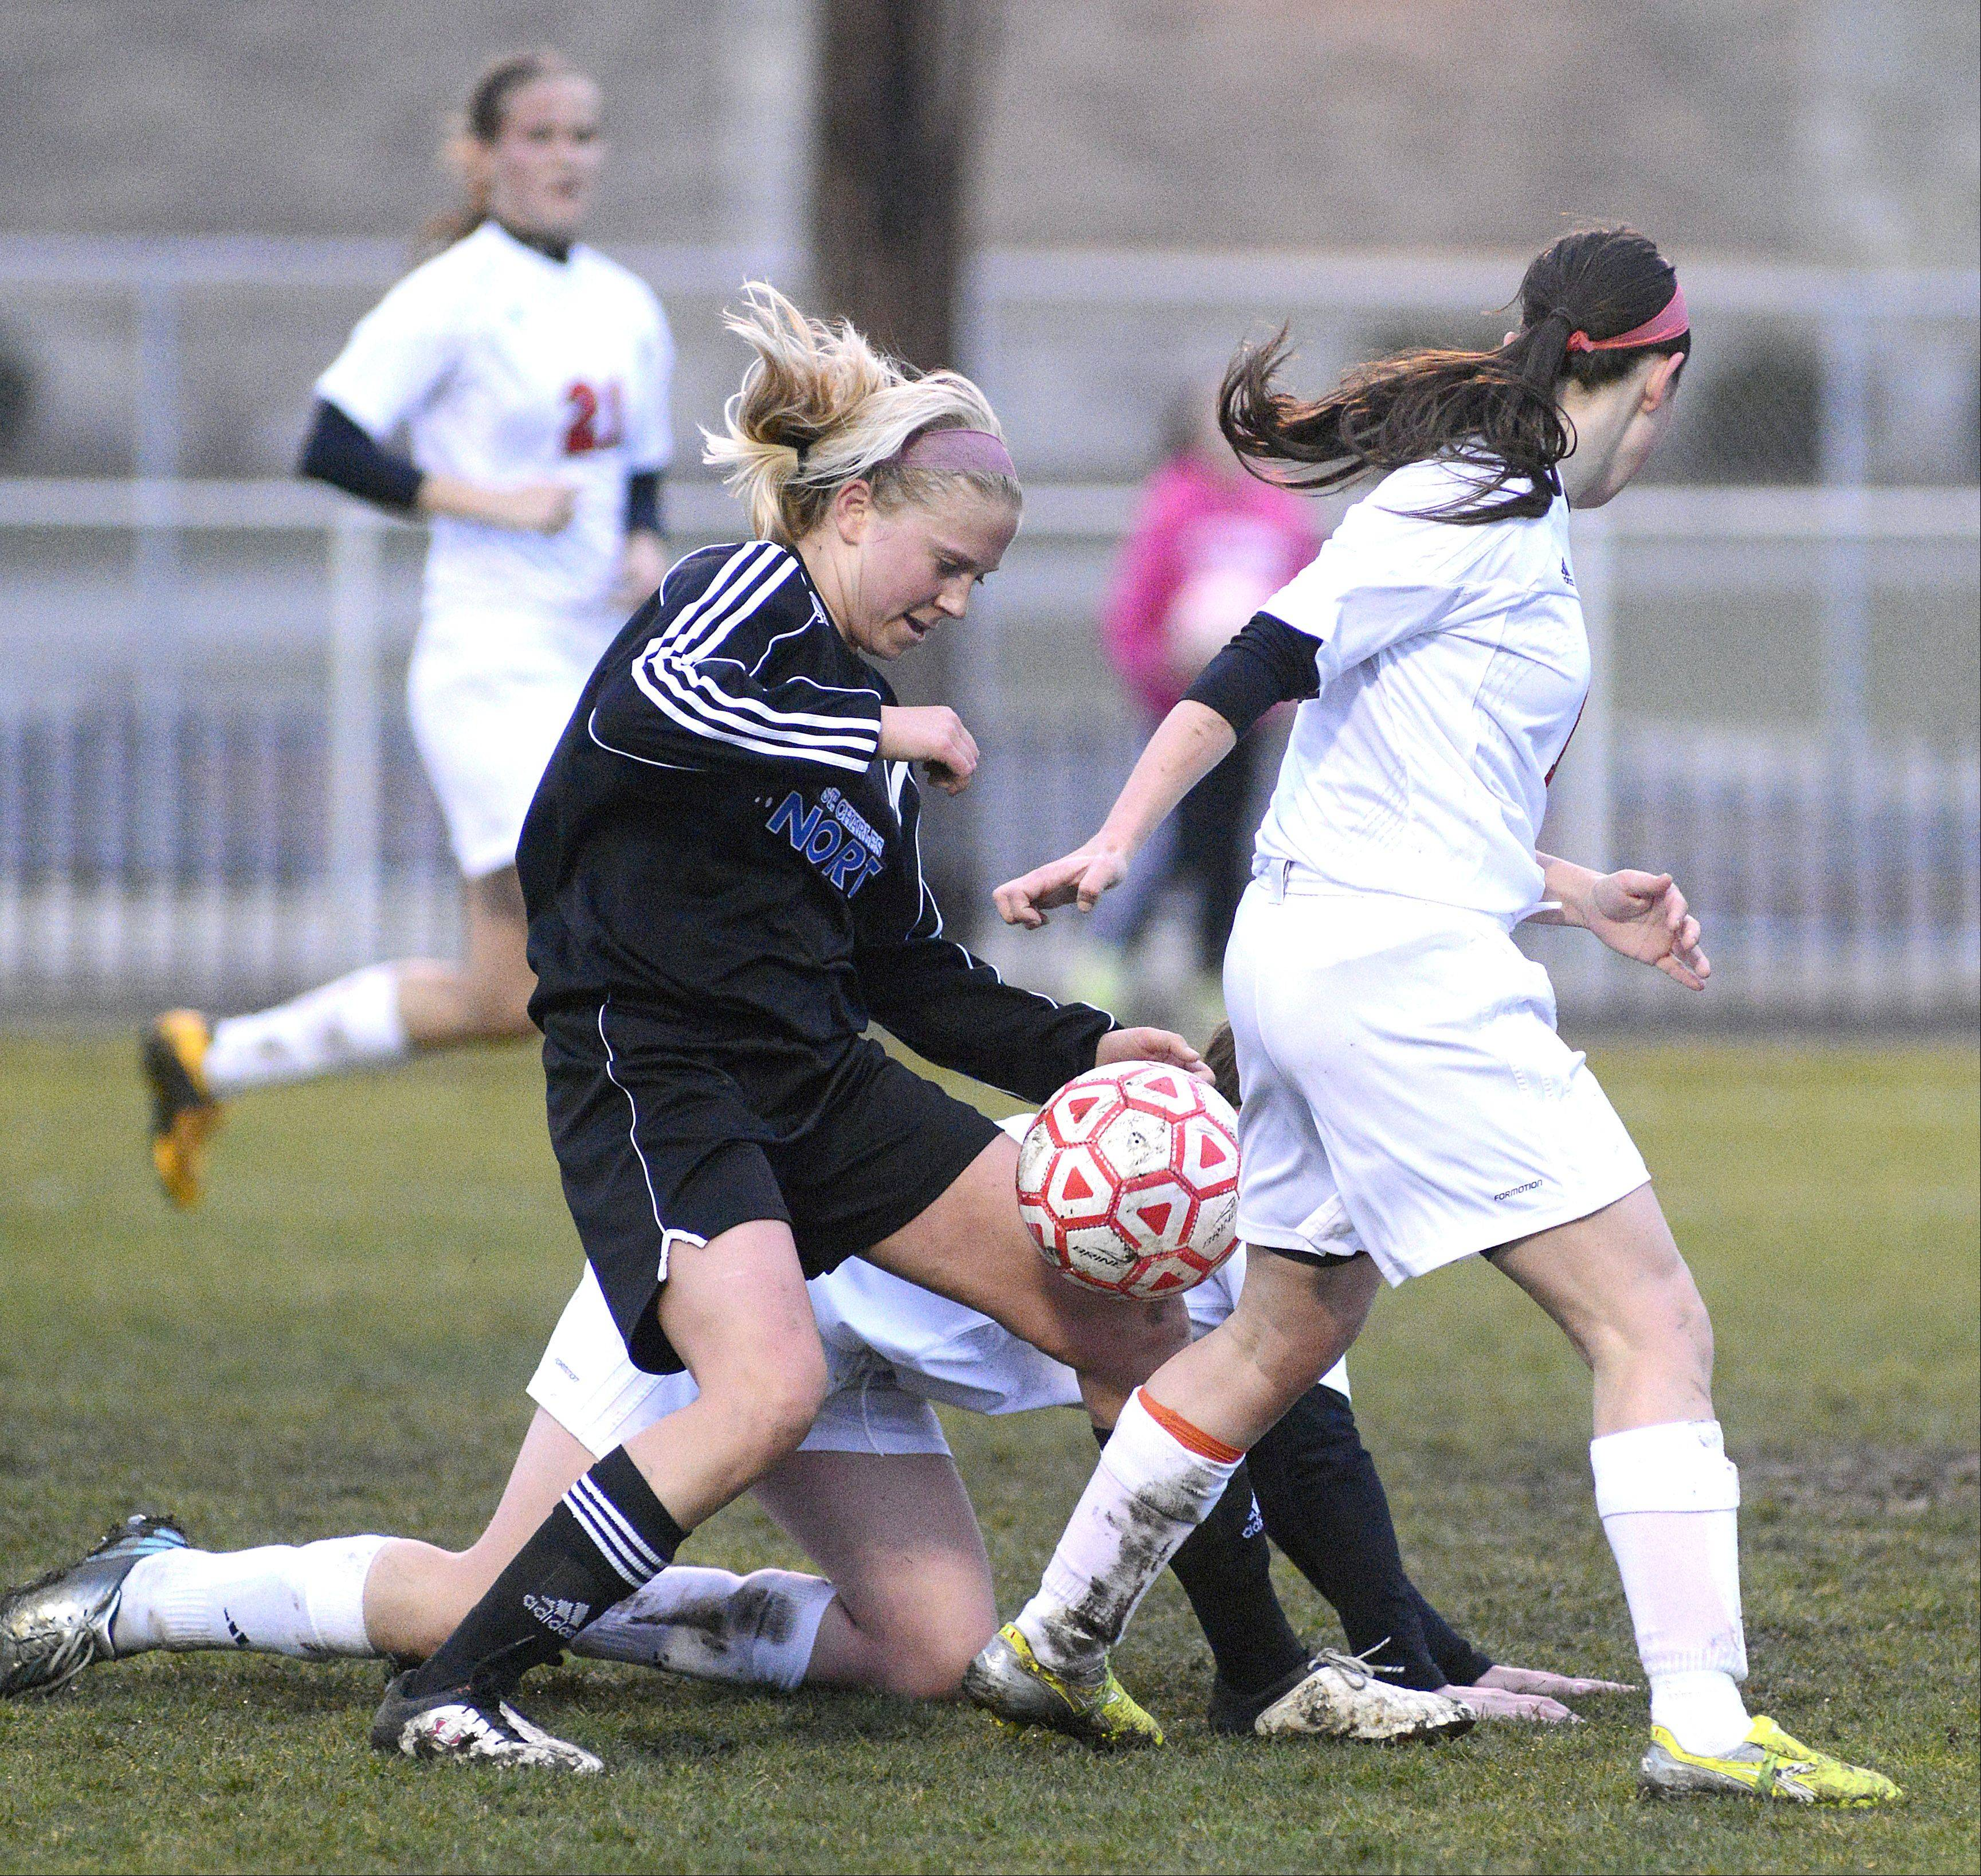 St. Charles North's Kelly Manski is the victor of the ball as Batavia's Alison Grimm goes down and Lindsay Spears (11) continues the fight in the first half on Thursday, April 11.